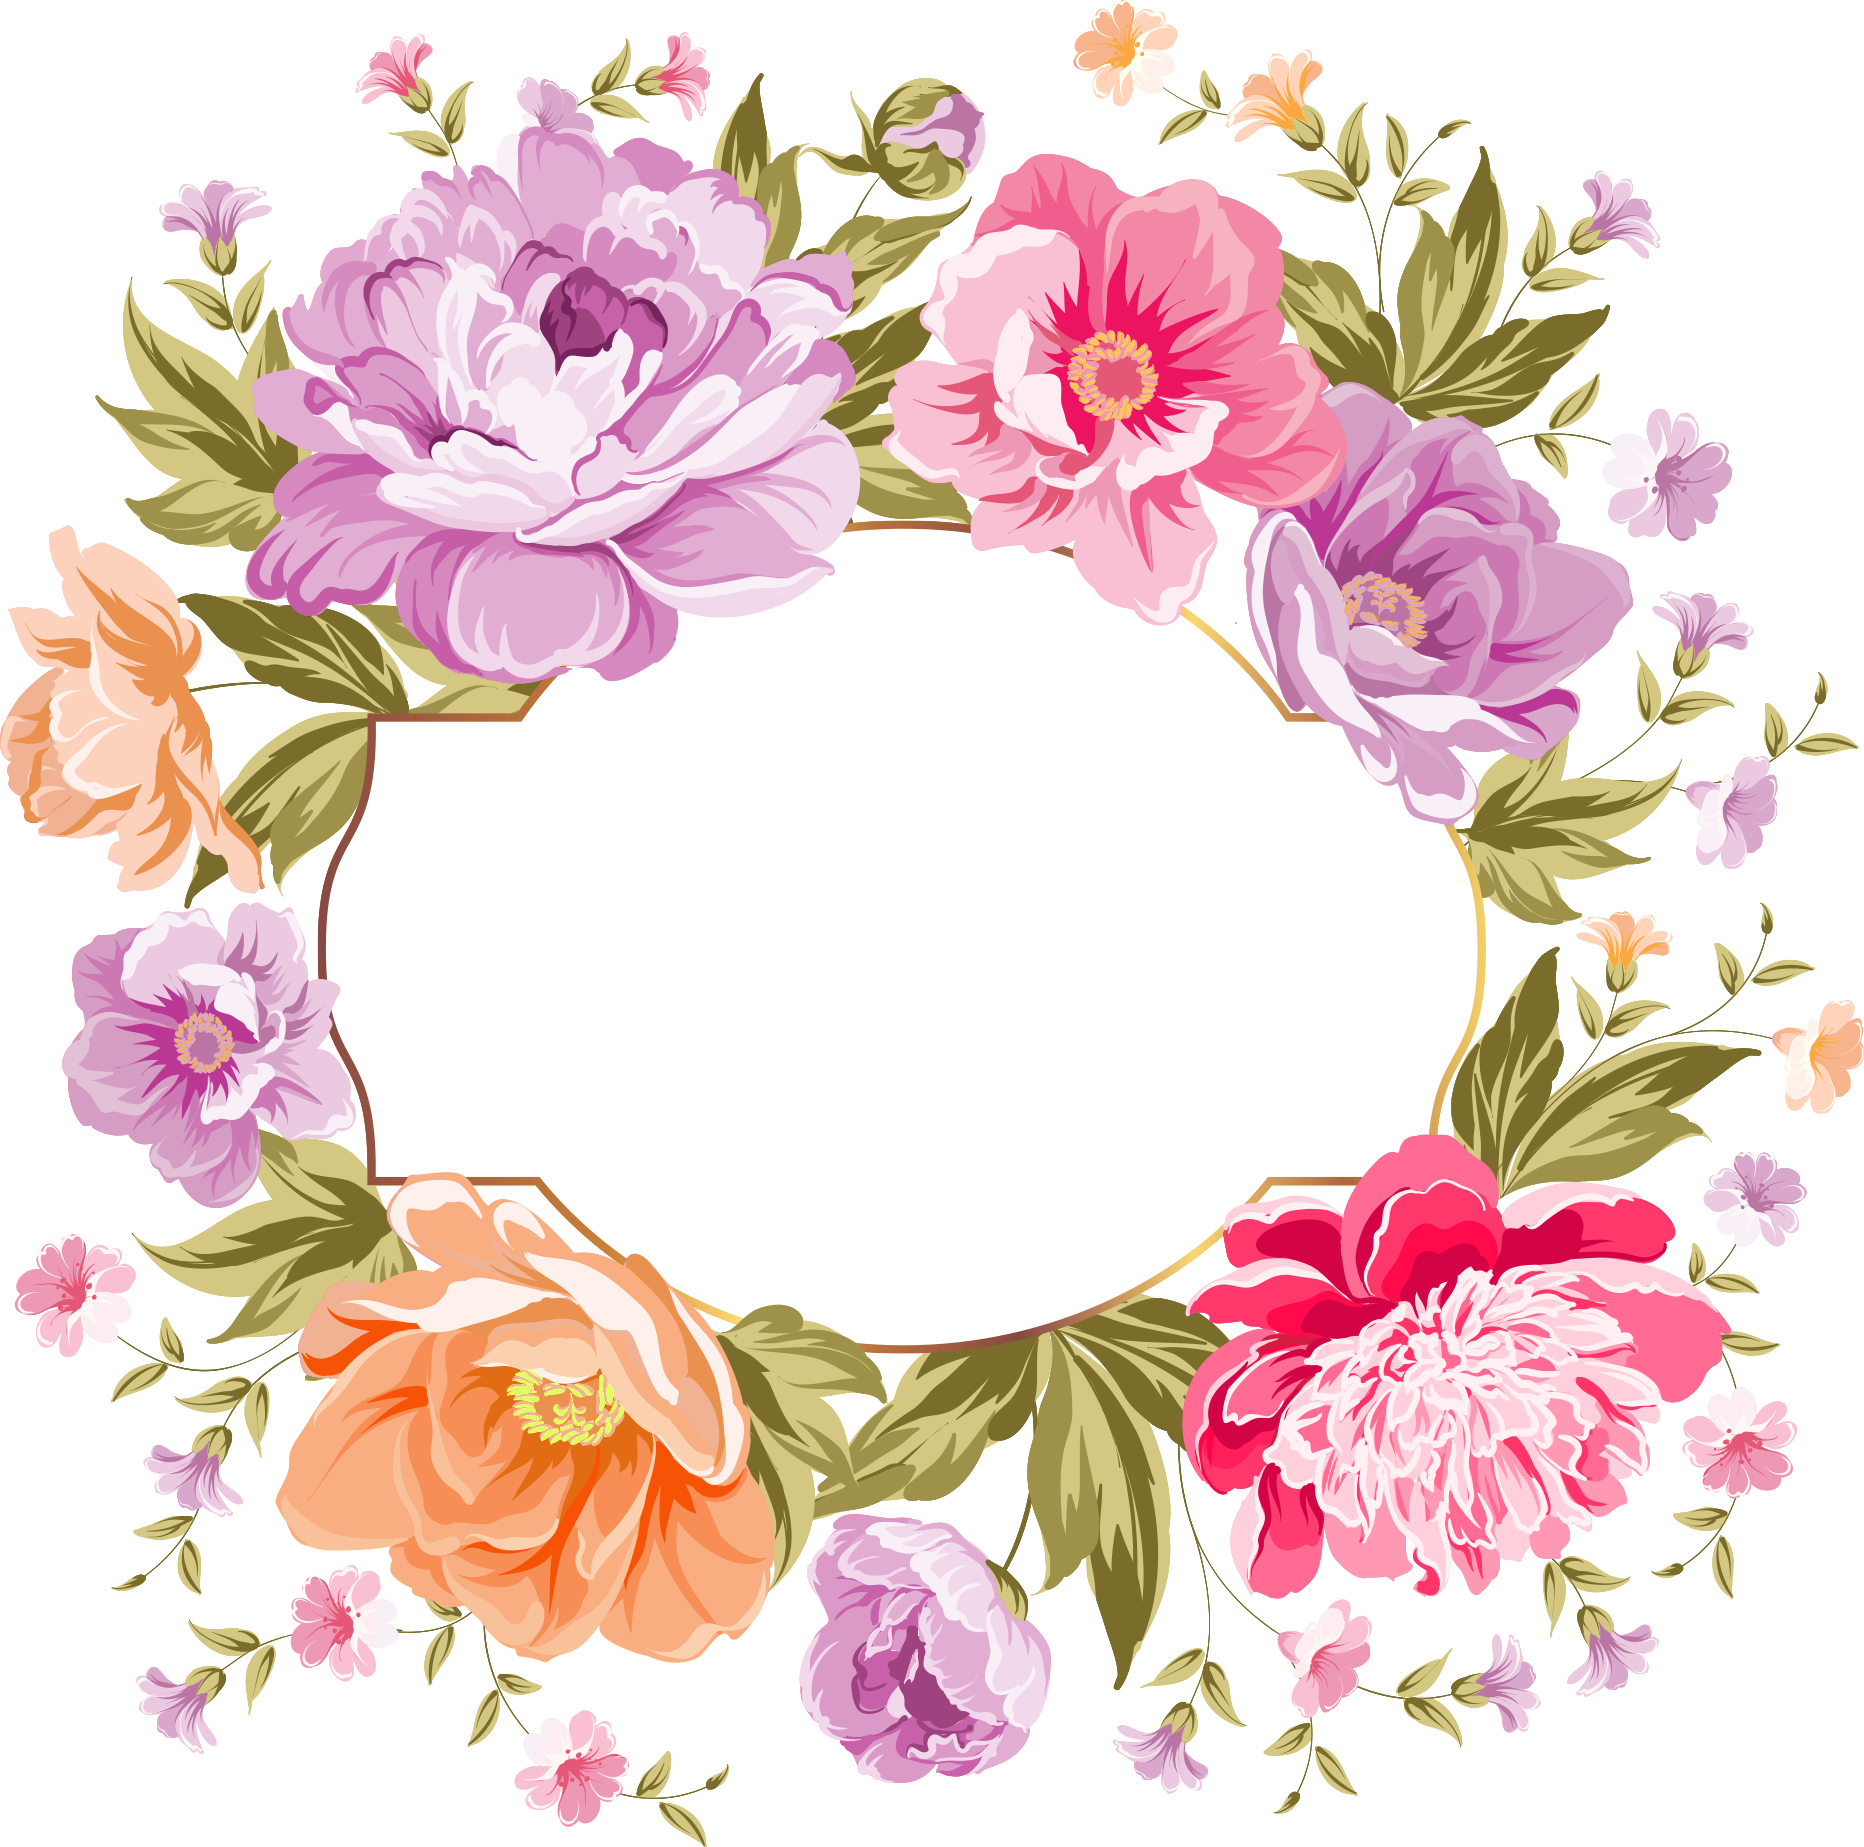 Flower art png. Http d top net